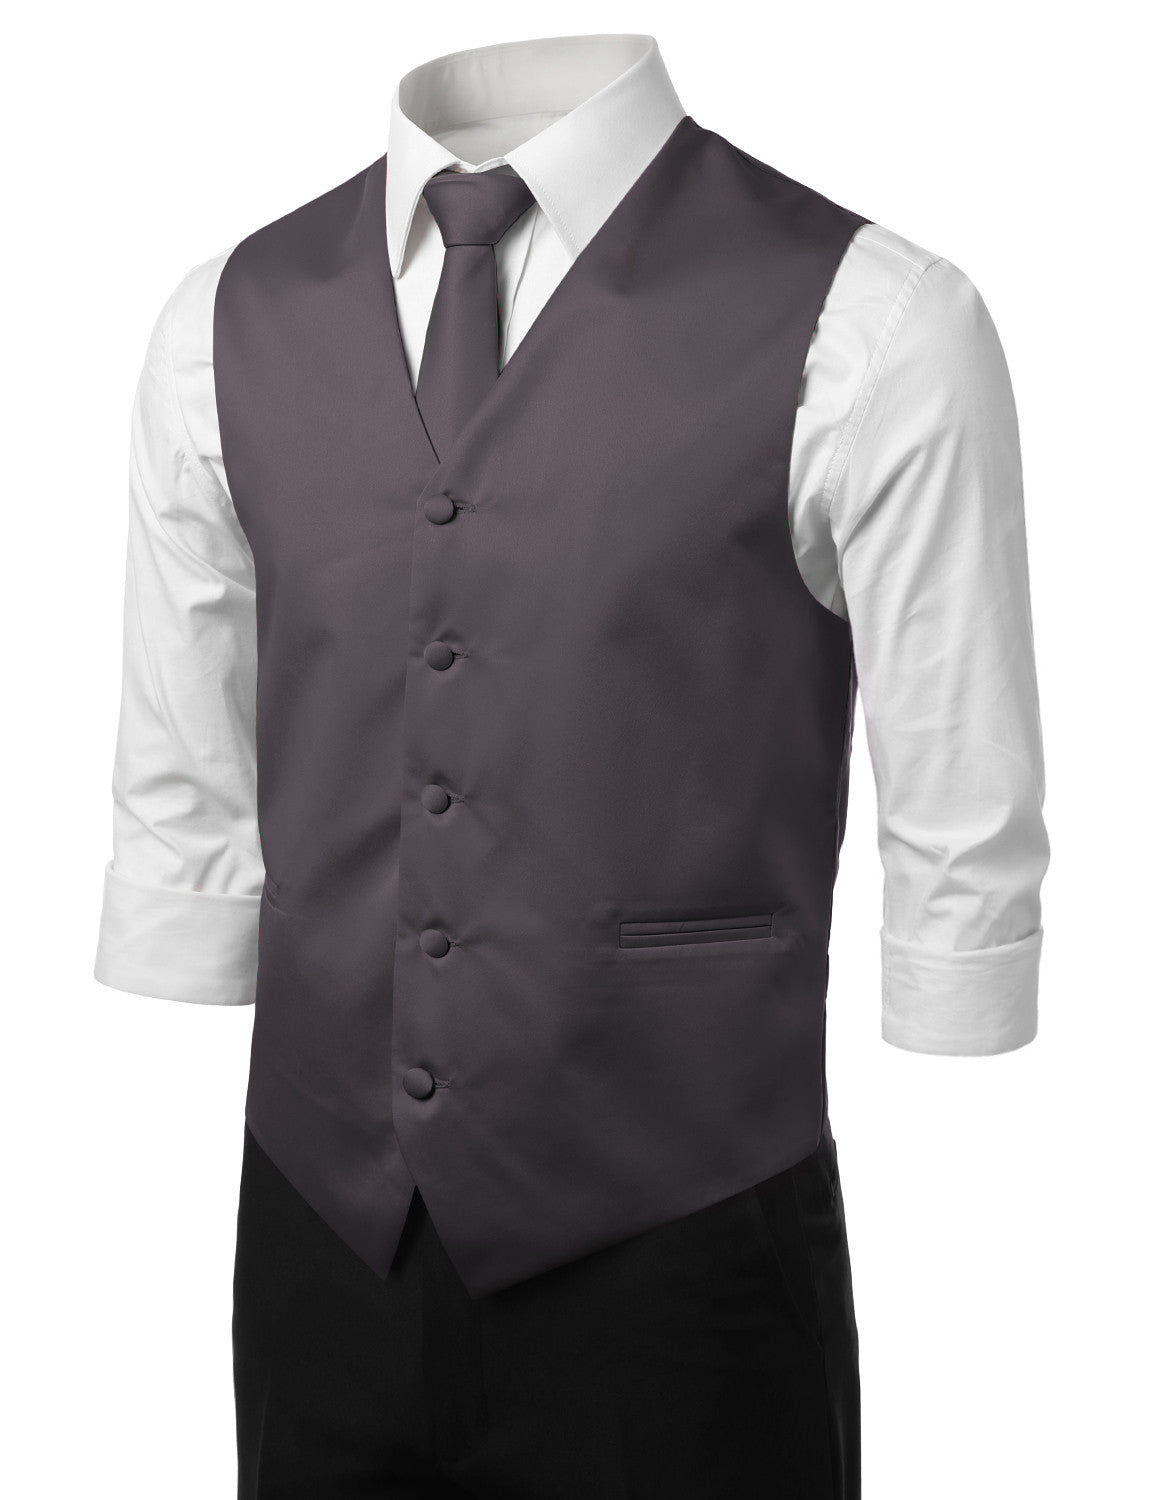 CHARCOAL16 Formal Tuxedo 3 Piece Vest Set (Vest, Necktie, Pocket Square)- MONDAYSUIT